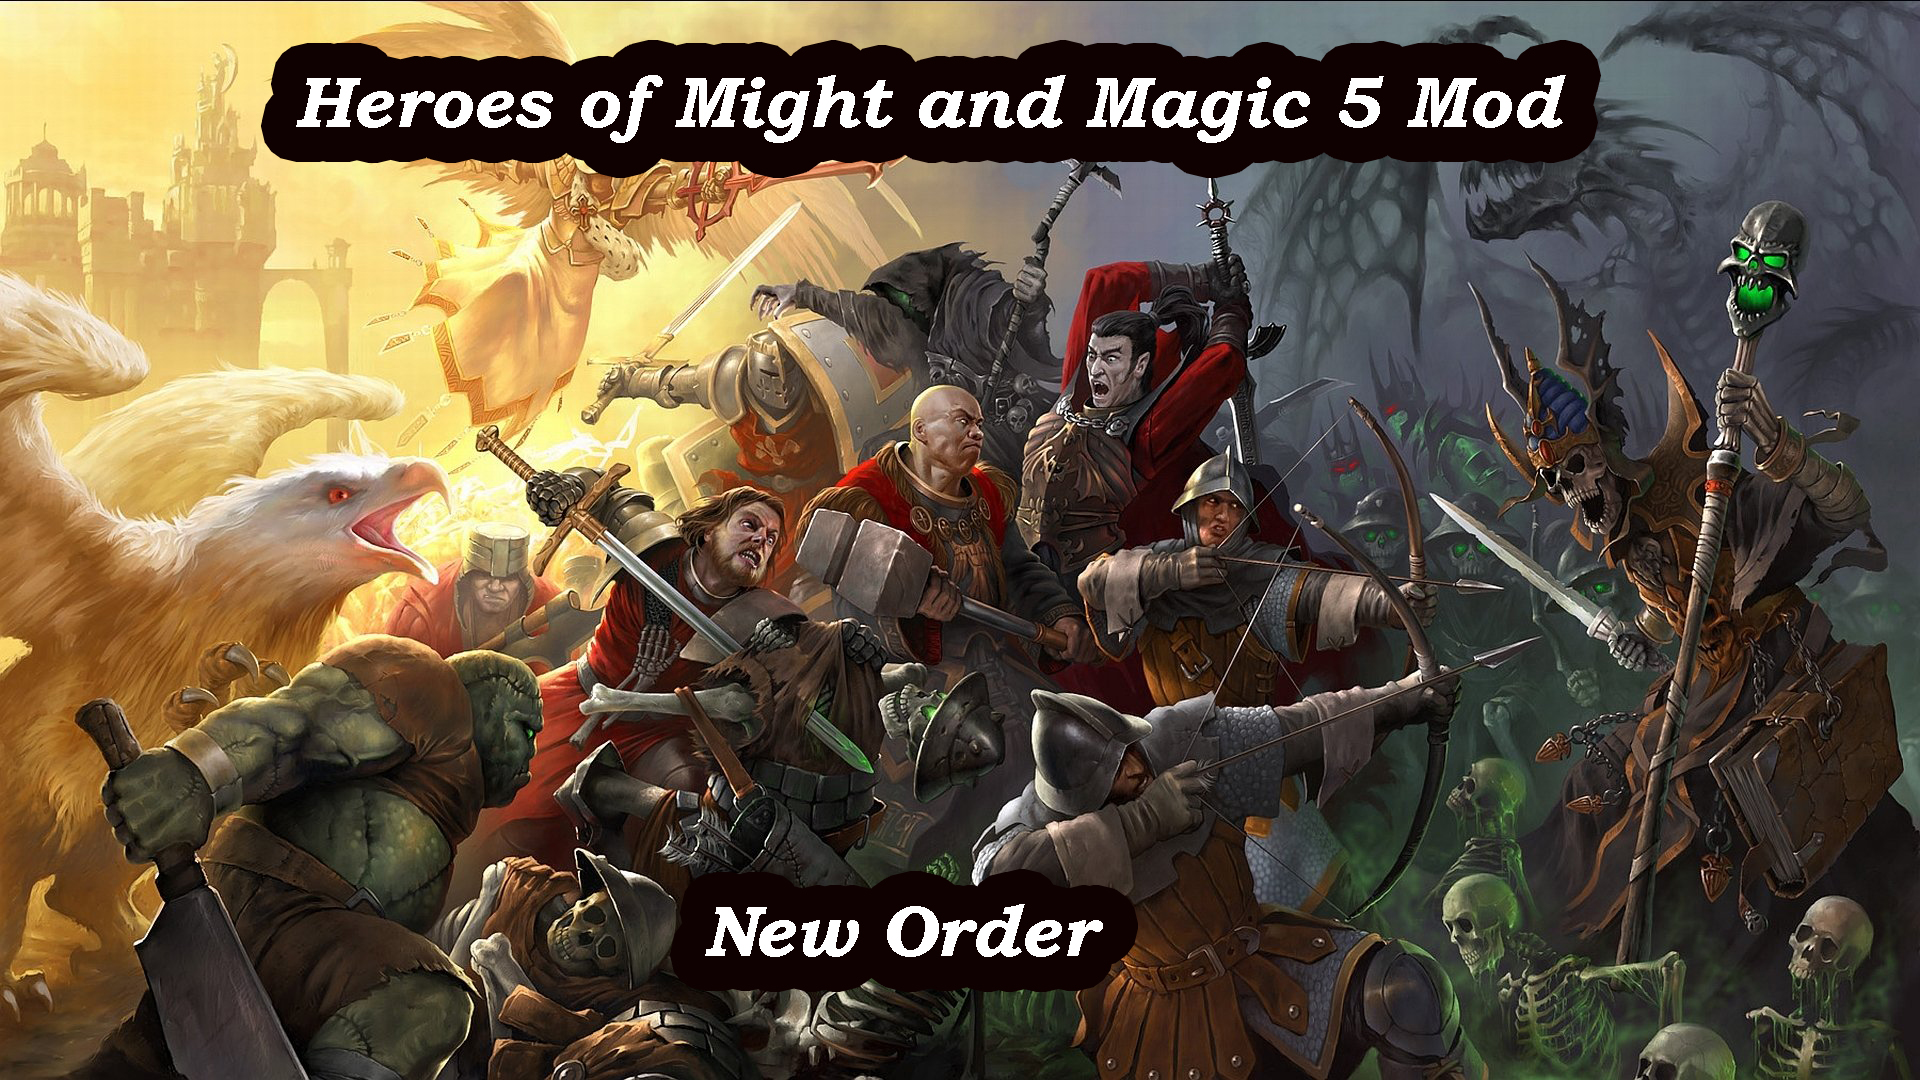 Might and magic heroes online release date in Sydney